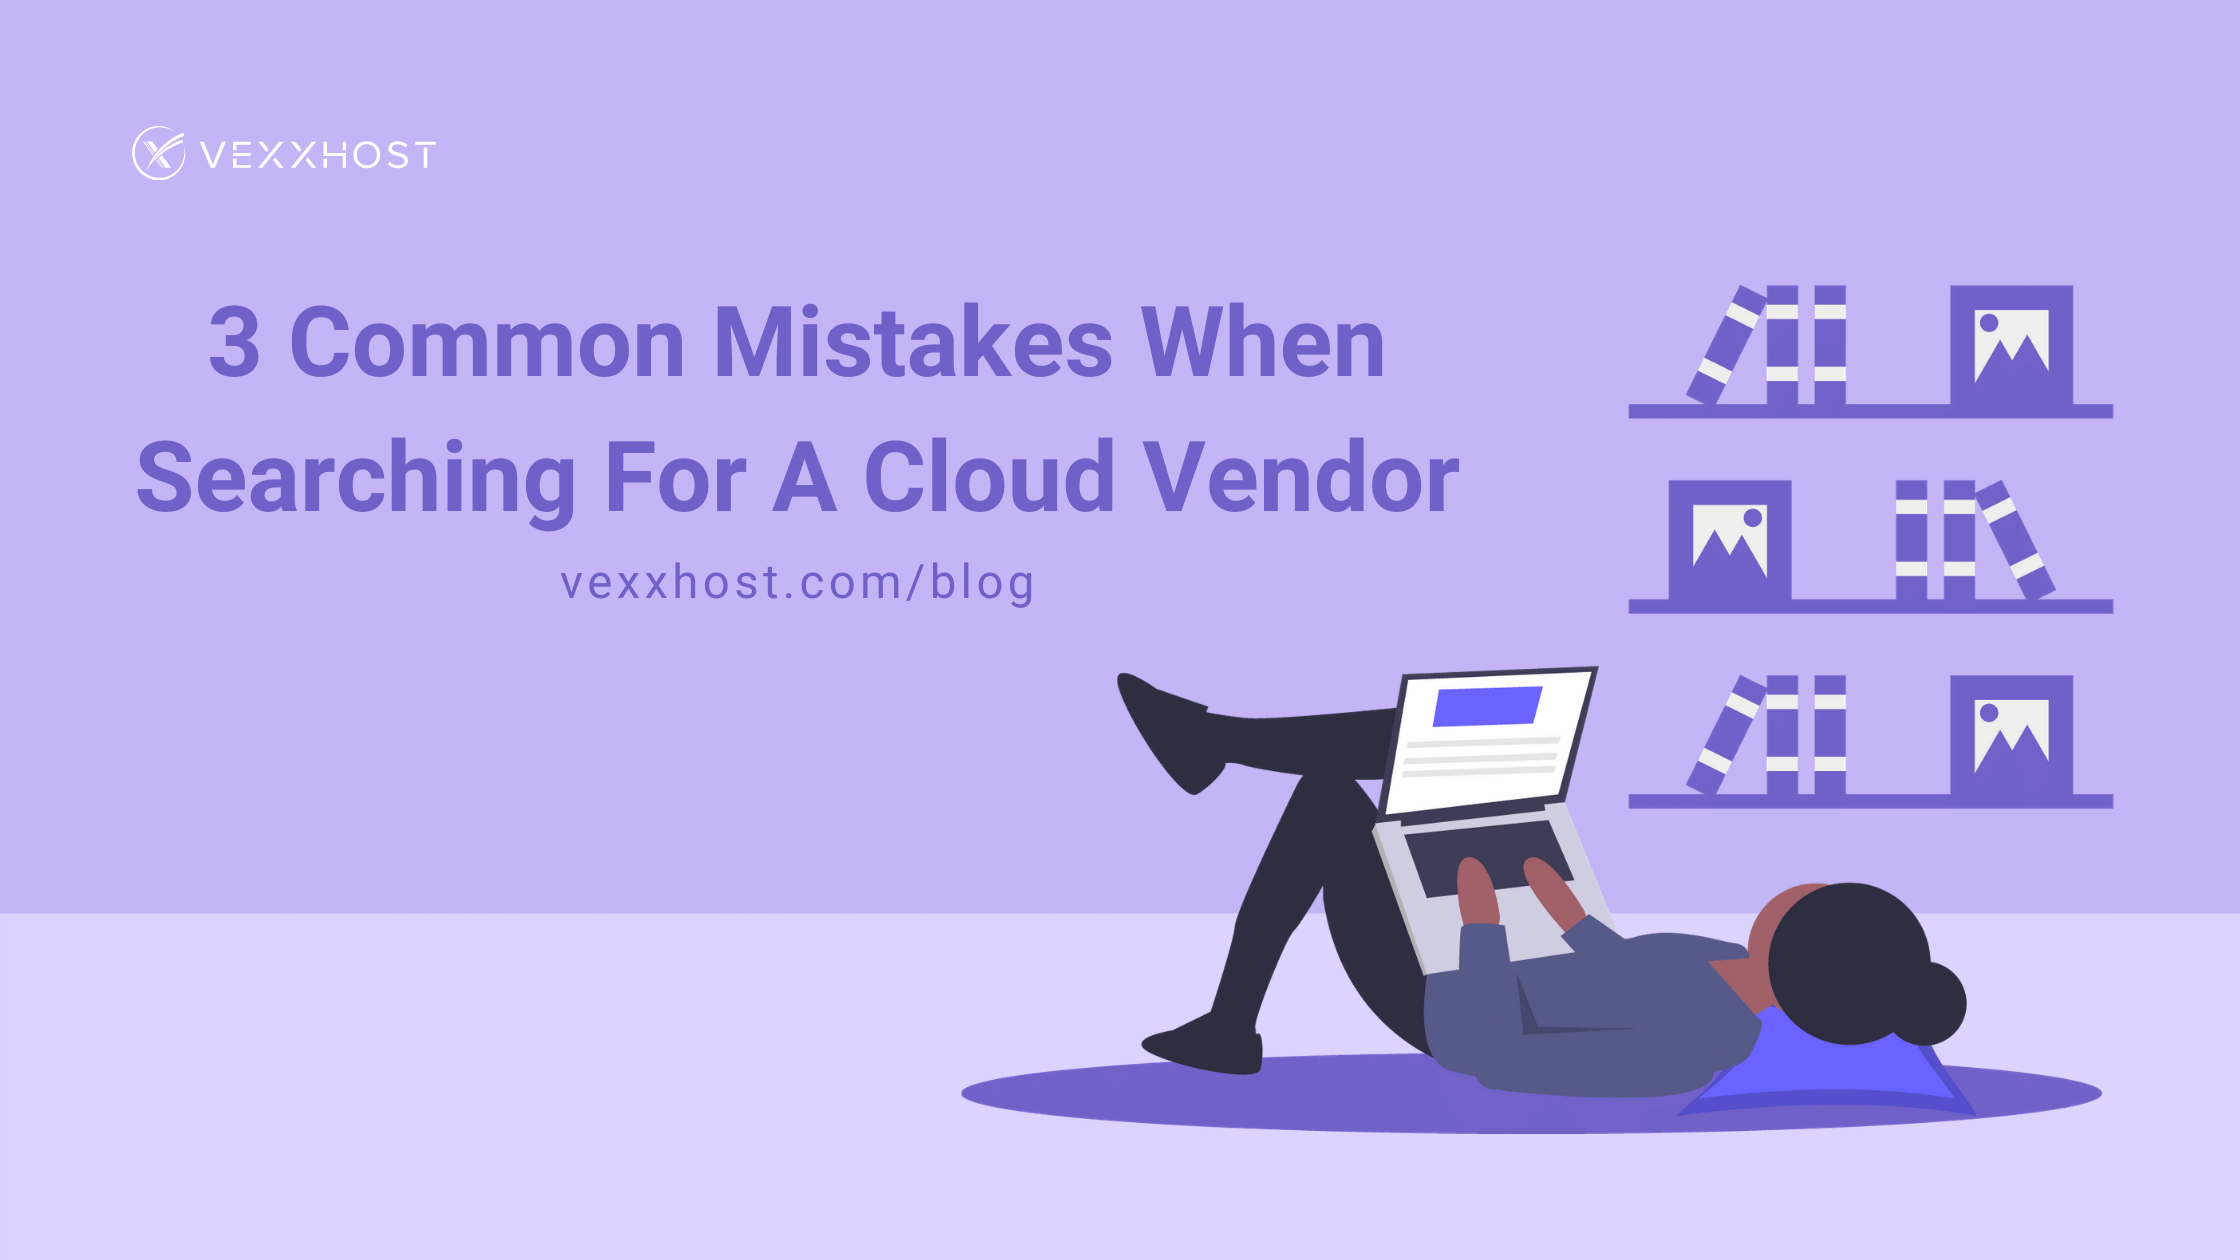 3 Common Mistakes When Searching For A Cloud Vendor